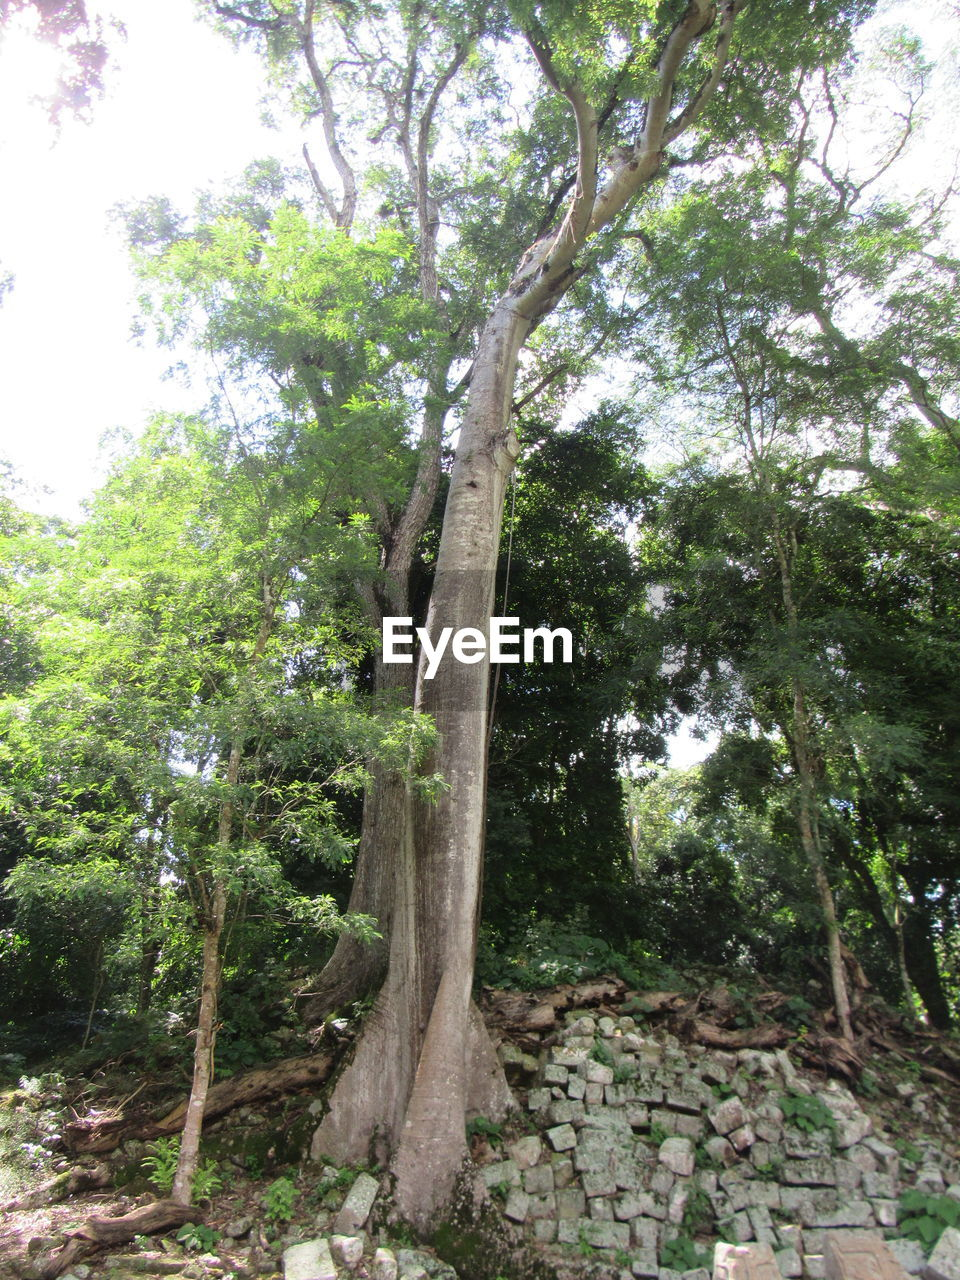 tree, plant, growth, forest, day, tree trunk, trunk, nature, land, no people, outdoors, green color, plant part, tranquility, leaf, environment, branch, beauty in nature, woodland, low angle view, rainforest